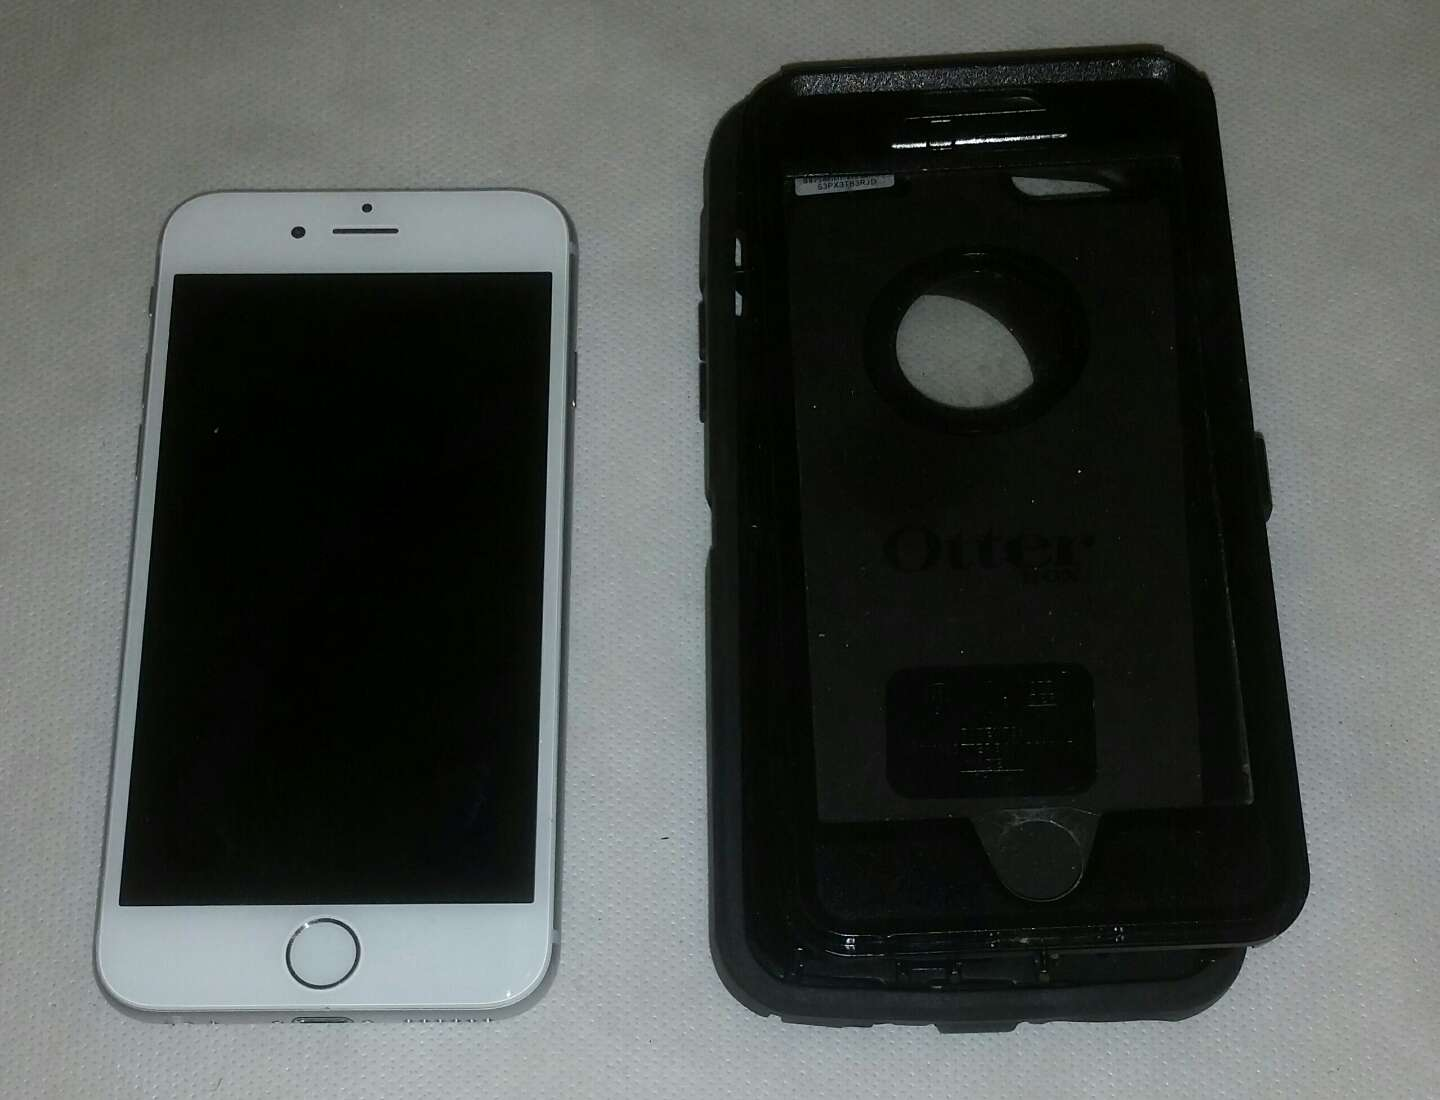 iphone 4 model number verizon iphone 6 16gb model number mg5x2ll a clean imei 5310